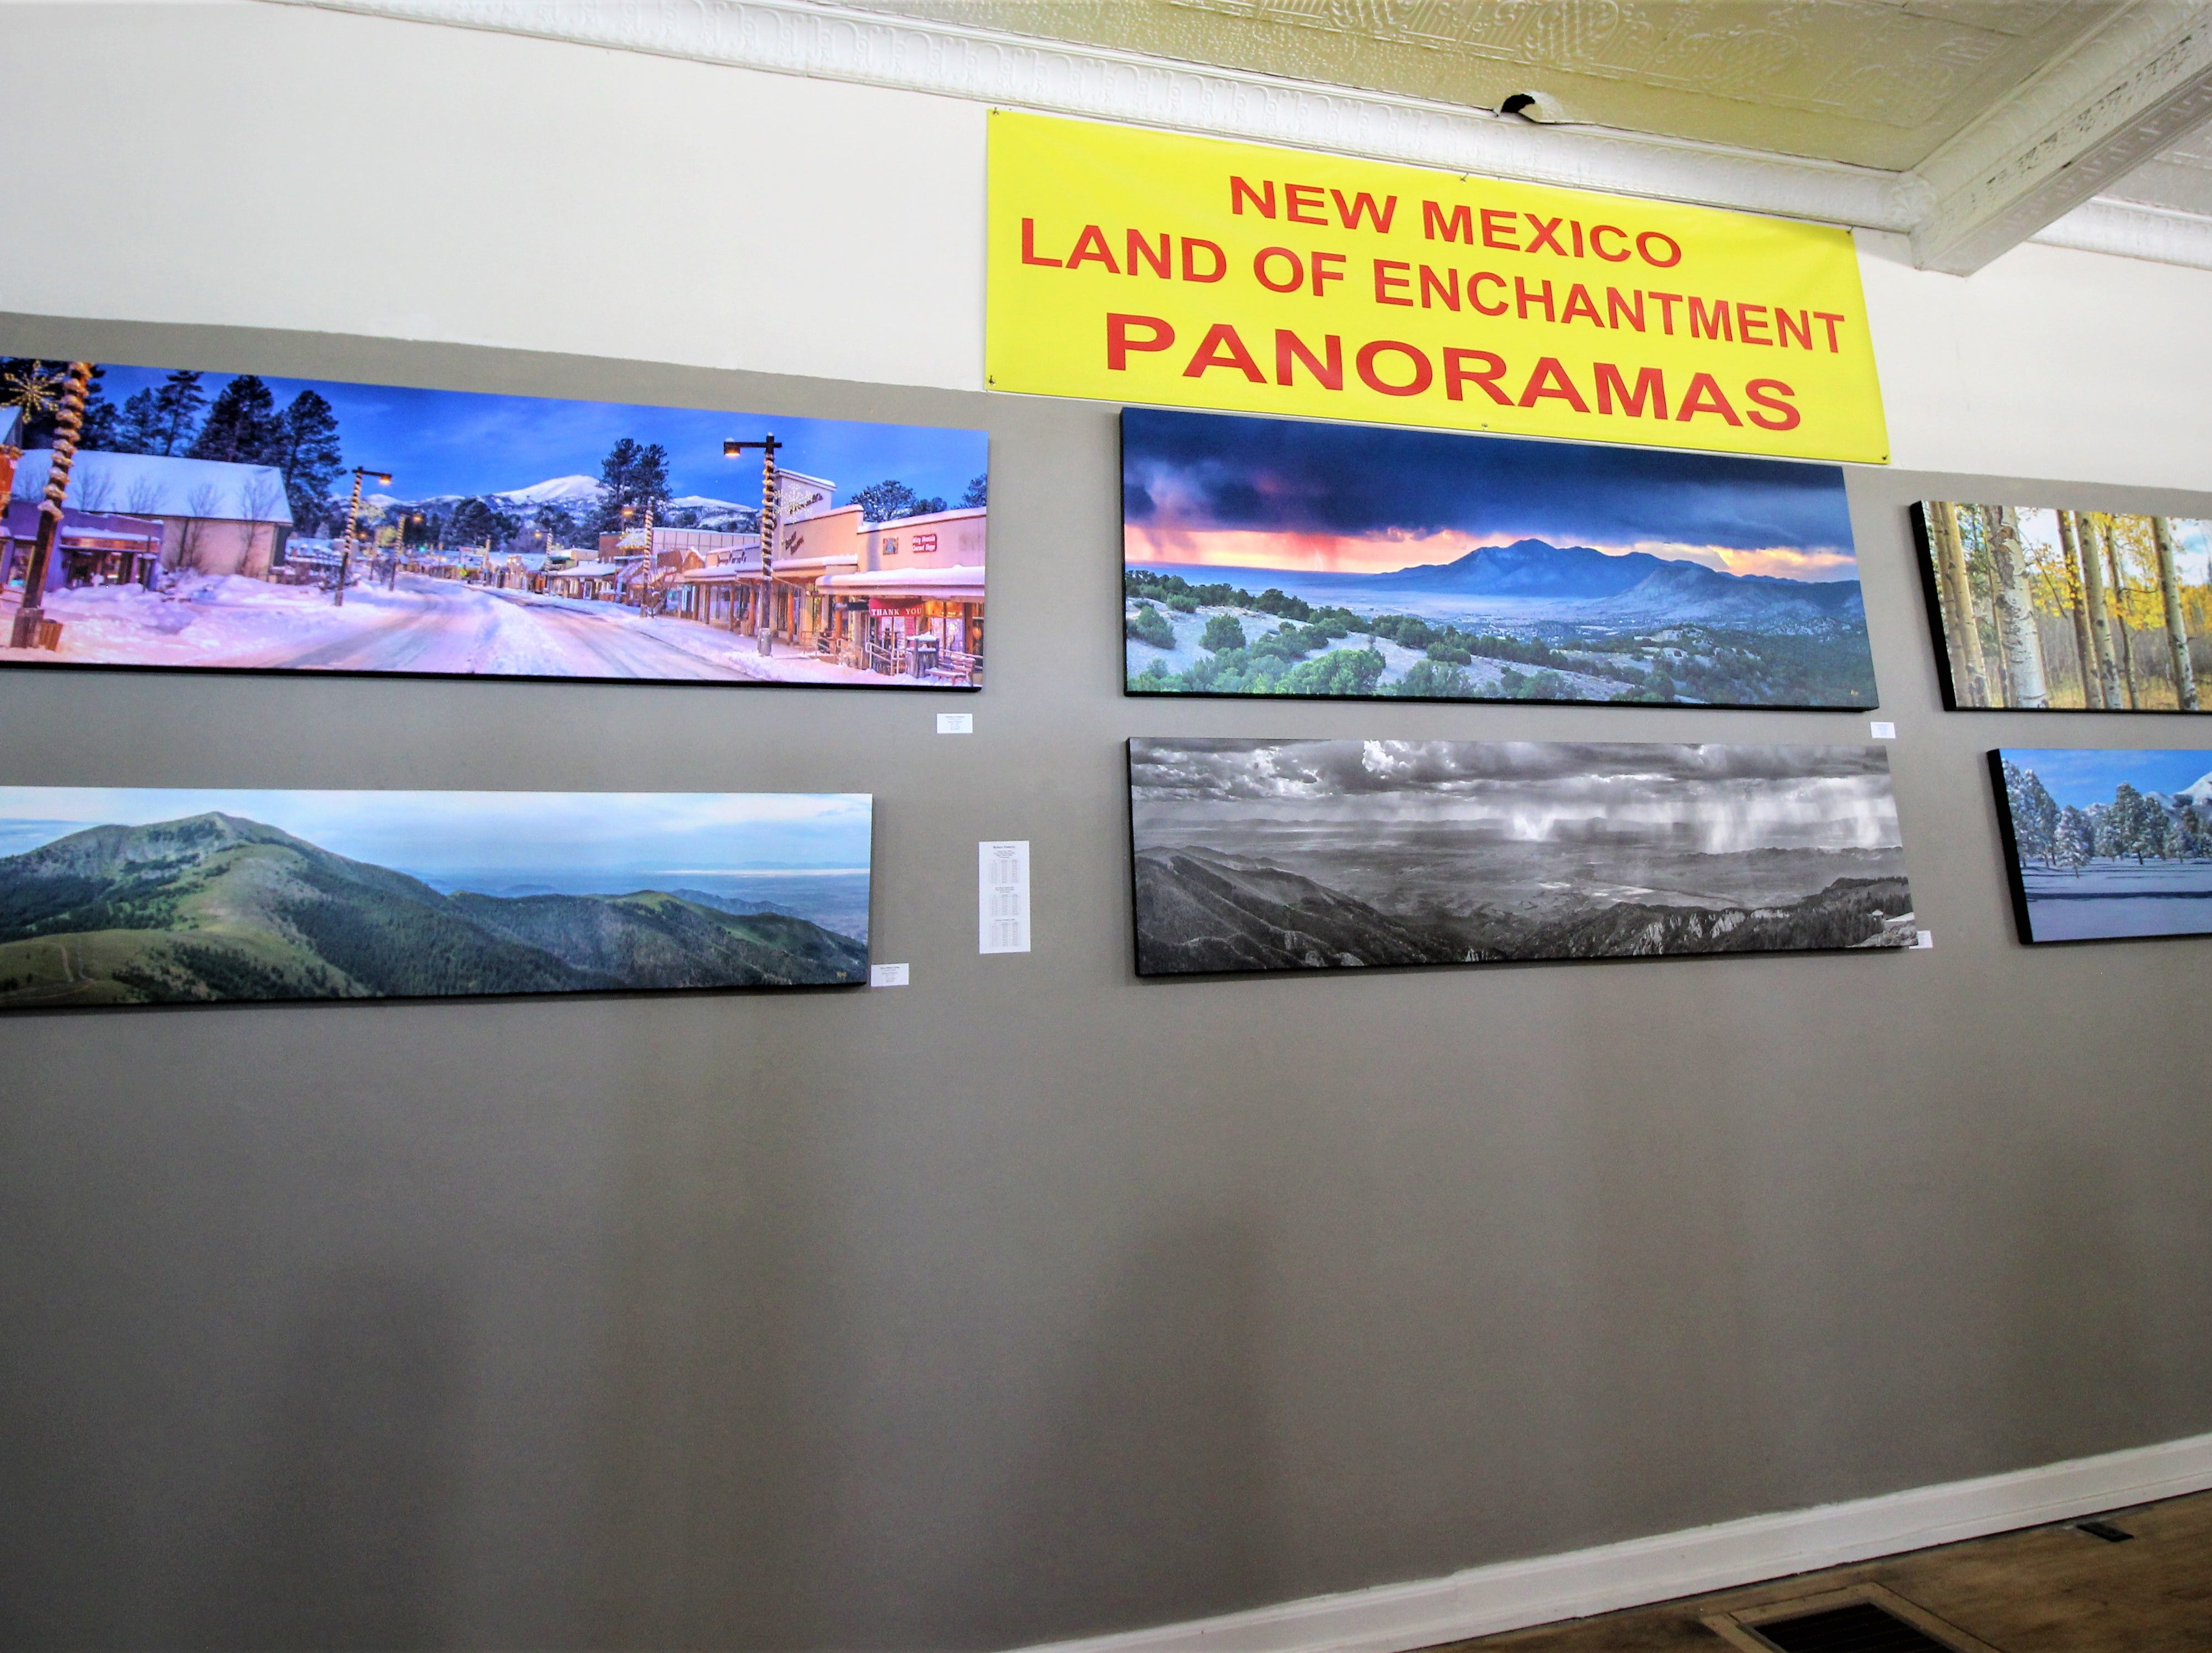 A 70' wall displays panoramic photography. The exhibit opened on April 13 and will be adding more photographs. Some of the paintings are over 6' in length containing several panels.